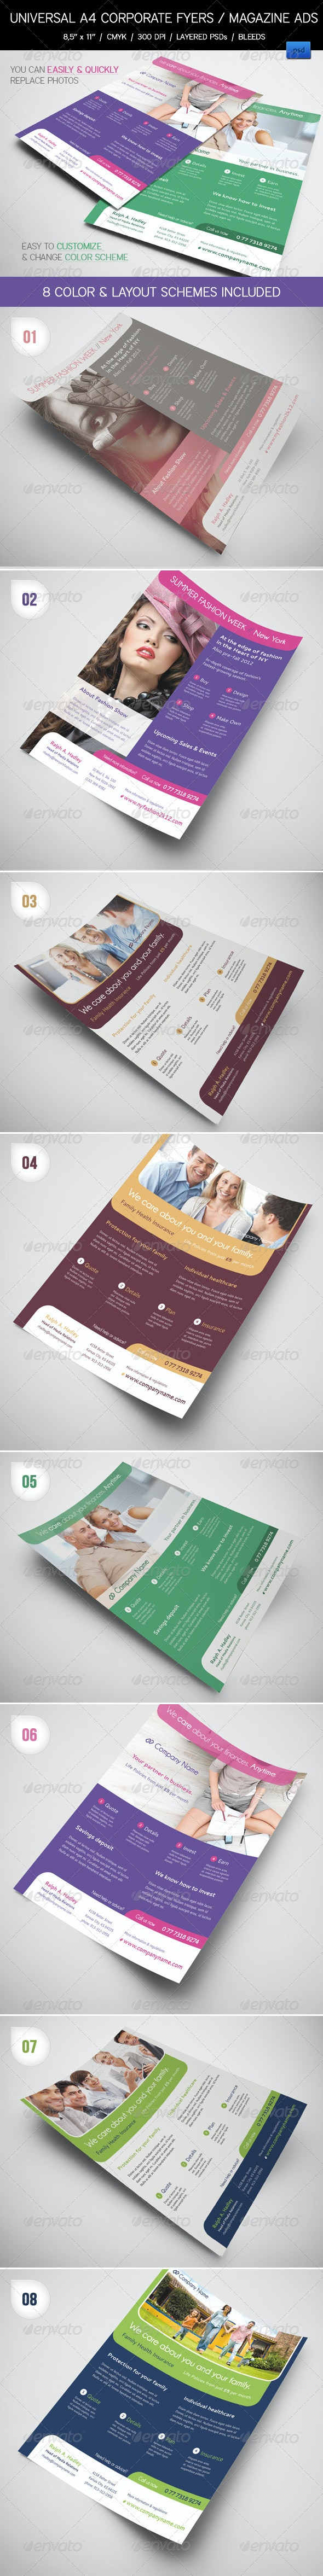 8 Universal Corporate Flyers / Magazine Ads - Corporate Flyers